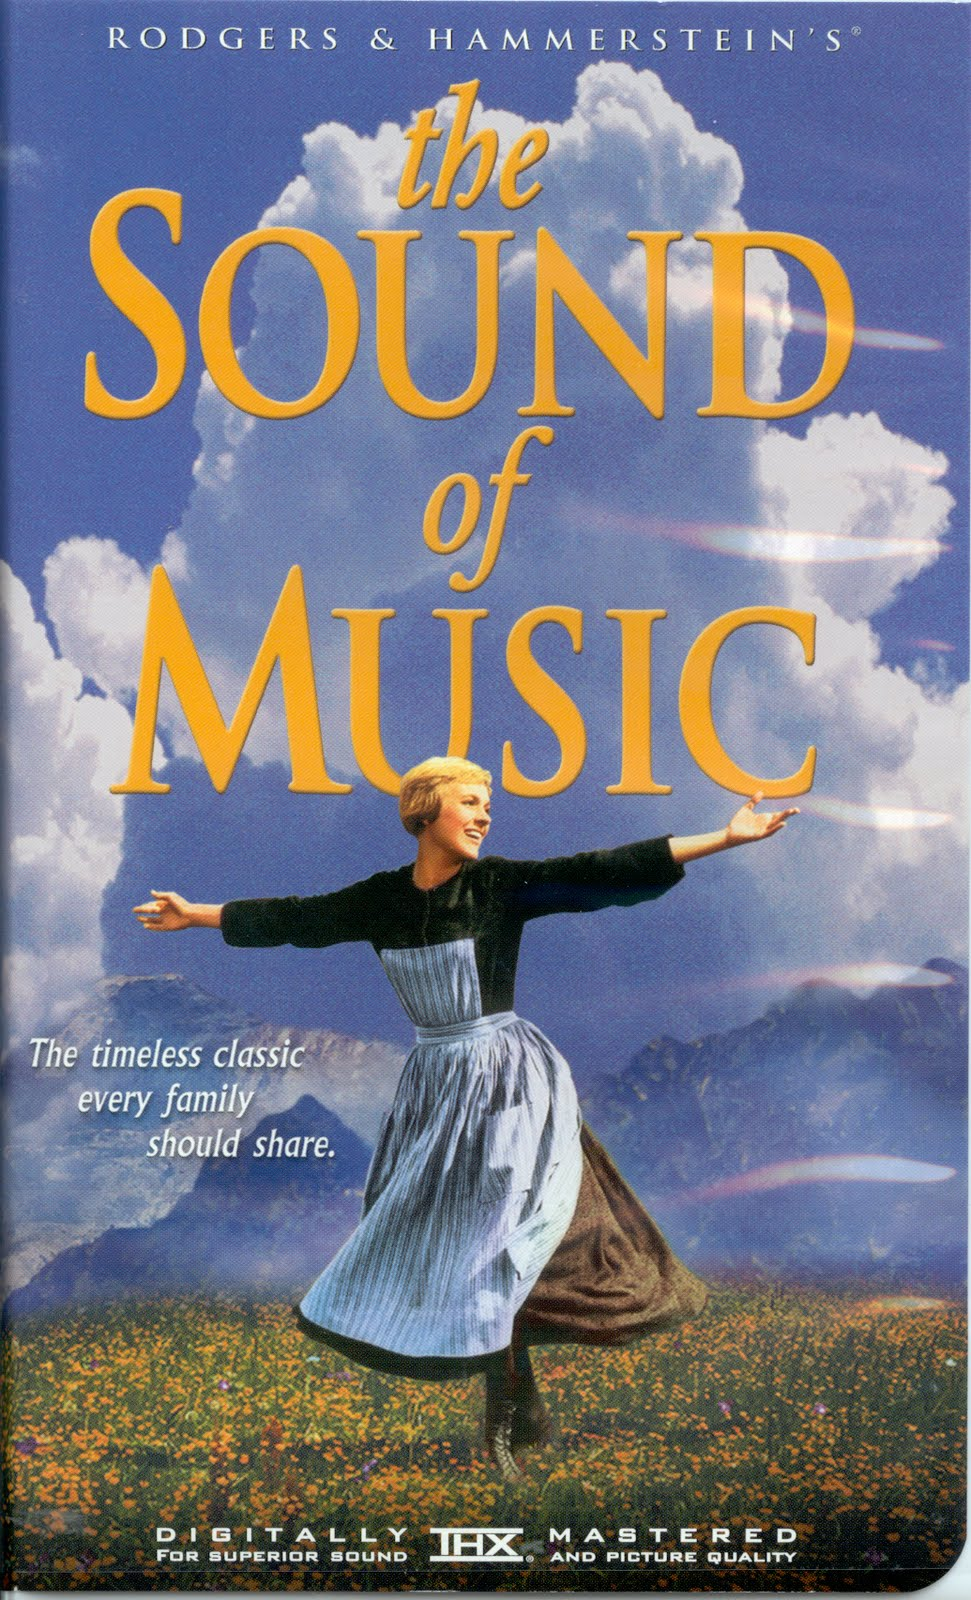 a summary of the robert wise directed musical film the sound of music The sound of music loading the player rodgers and hammerstein's the sound of music is a 1965 american musical film directed by robert wise and starring julie andrews and christopher plummer.